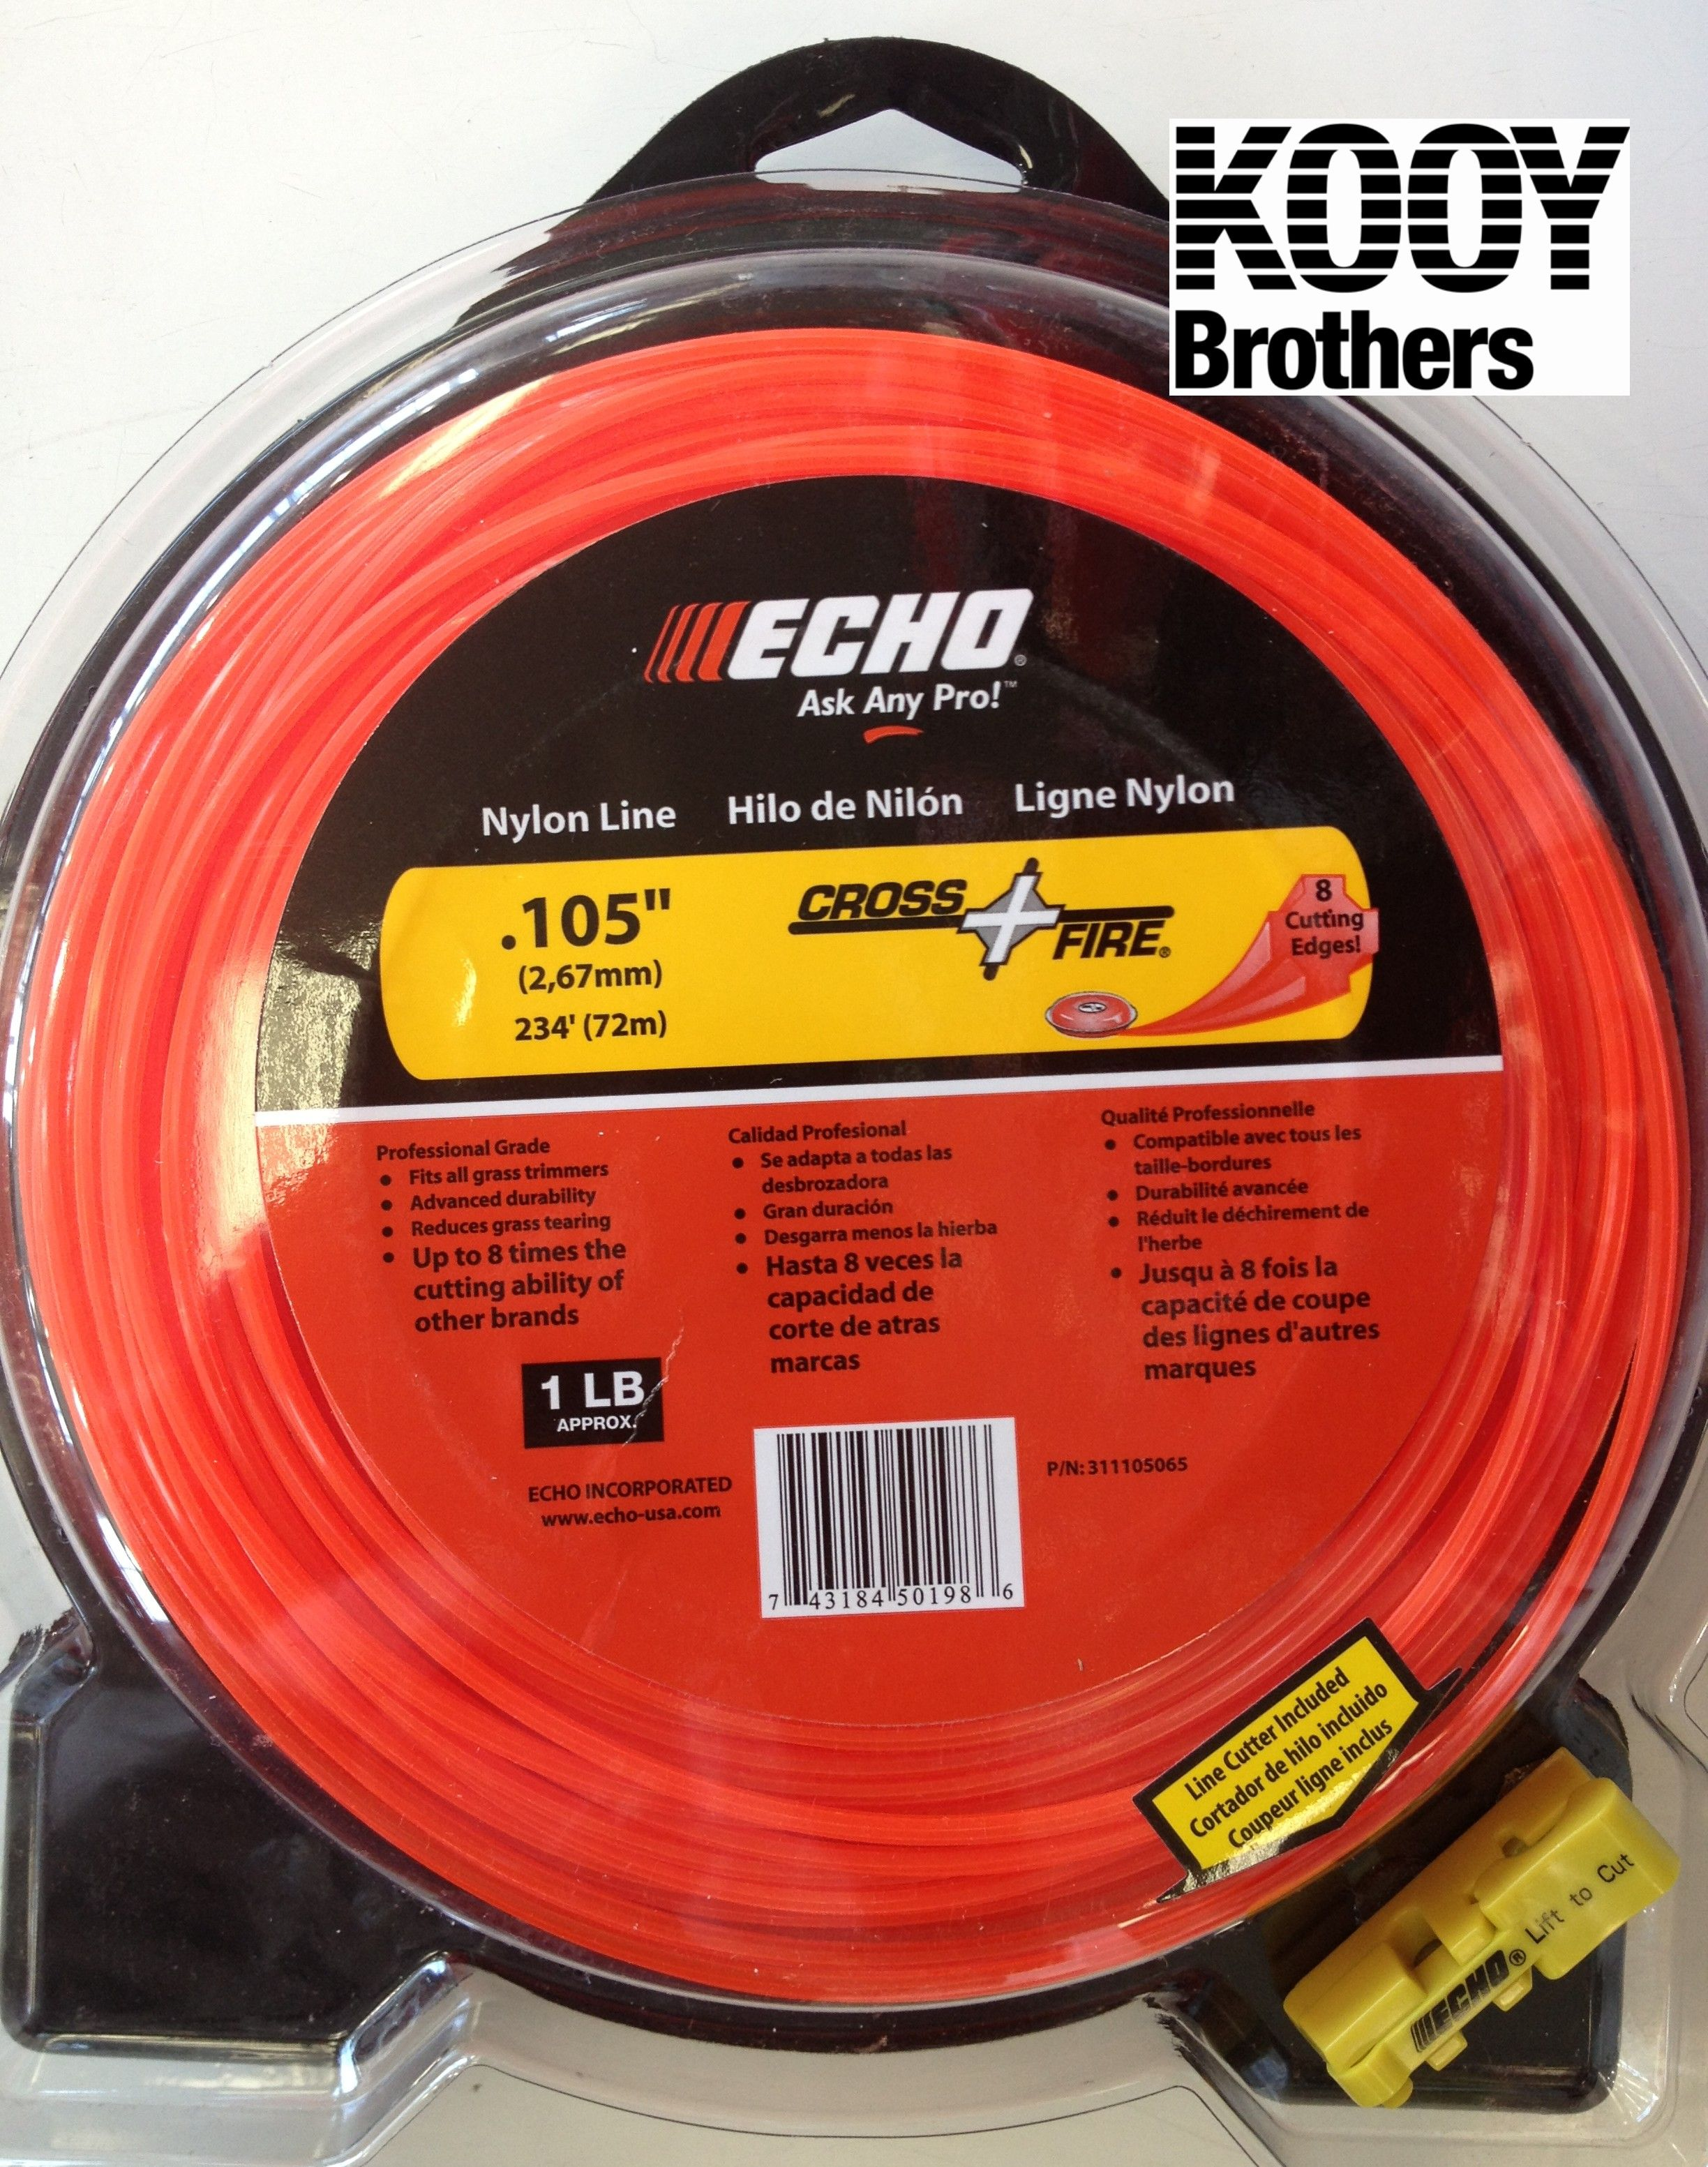 ECHO .105 Replacement Trimmer Line 1lb roll